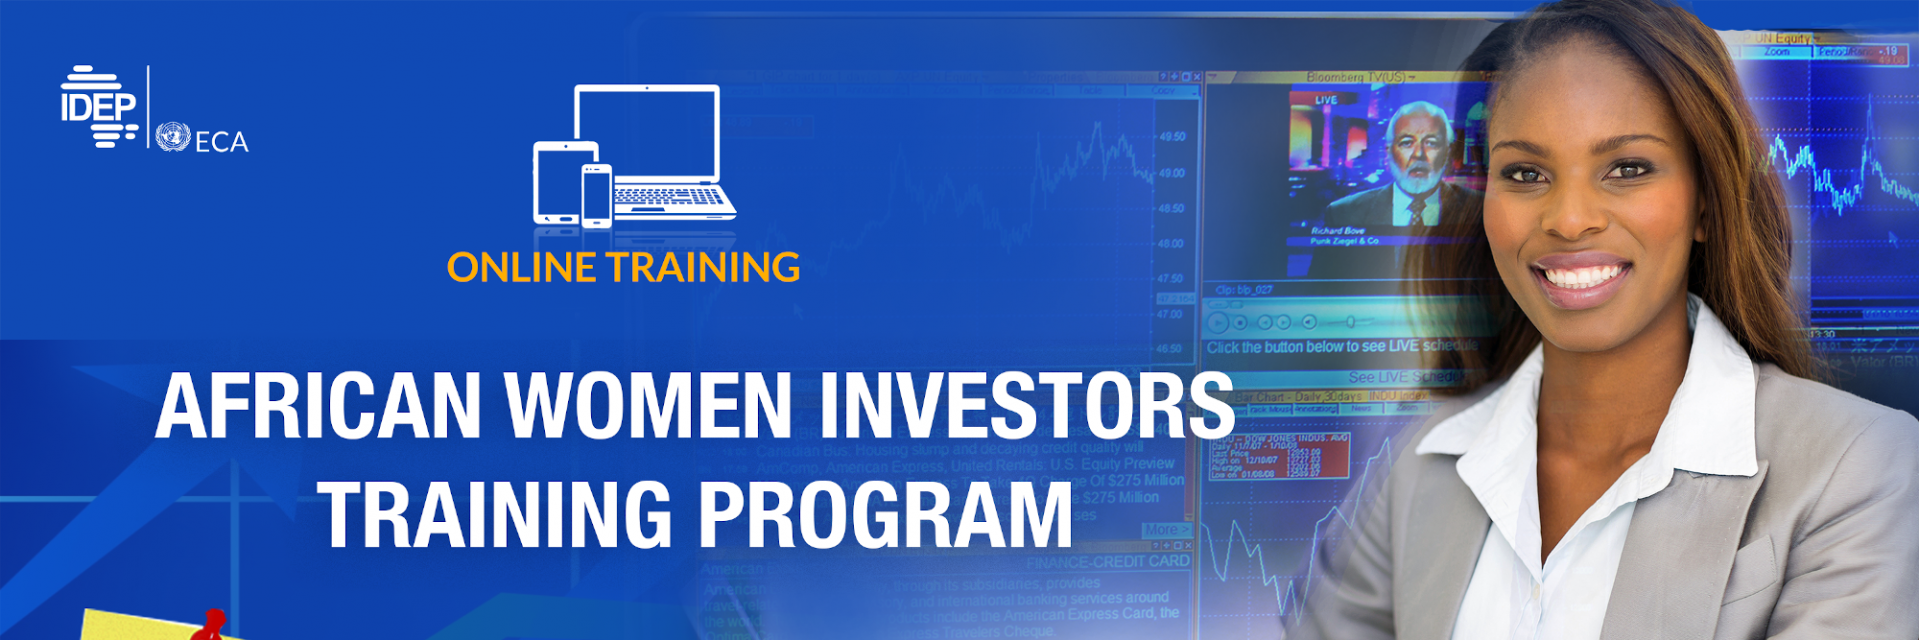 African Women Investors Training Program